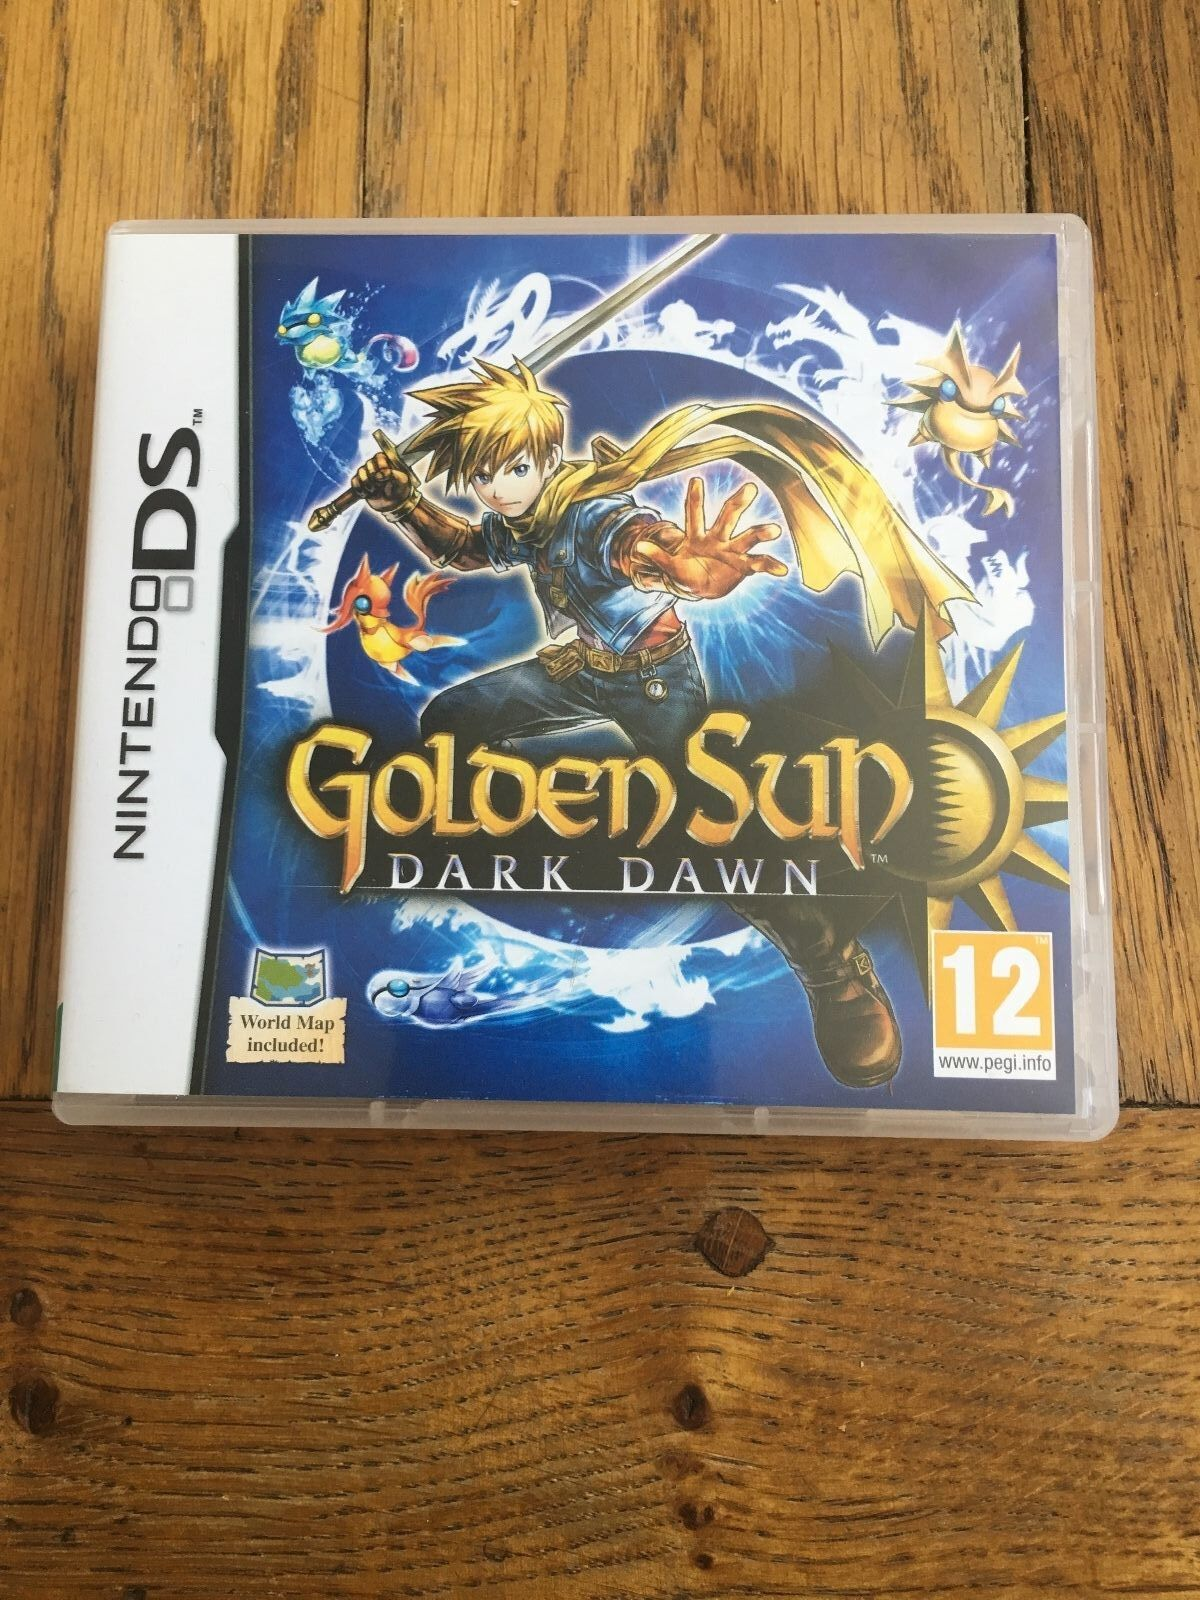 Golden Sun Dark Dawn Nintendo DS 3ds UK PAL Map Included